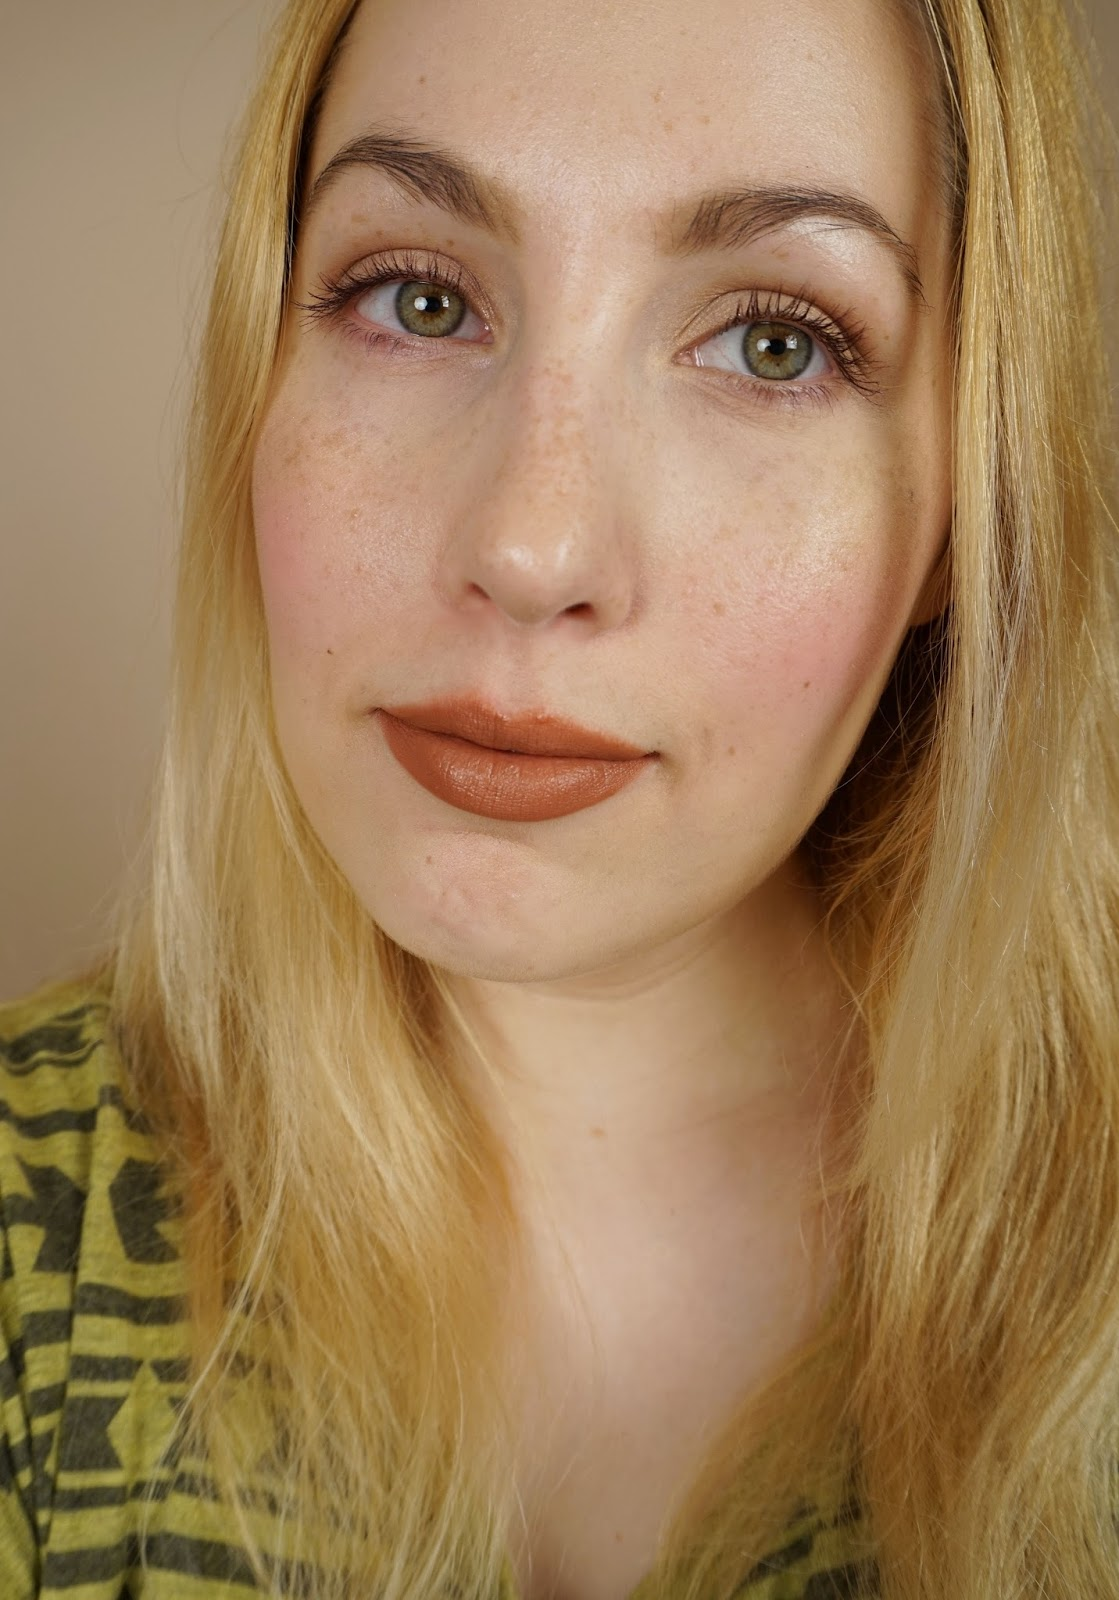 NARS Under Cover Summer 2016 Overheated Lip Cover review swatches face